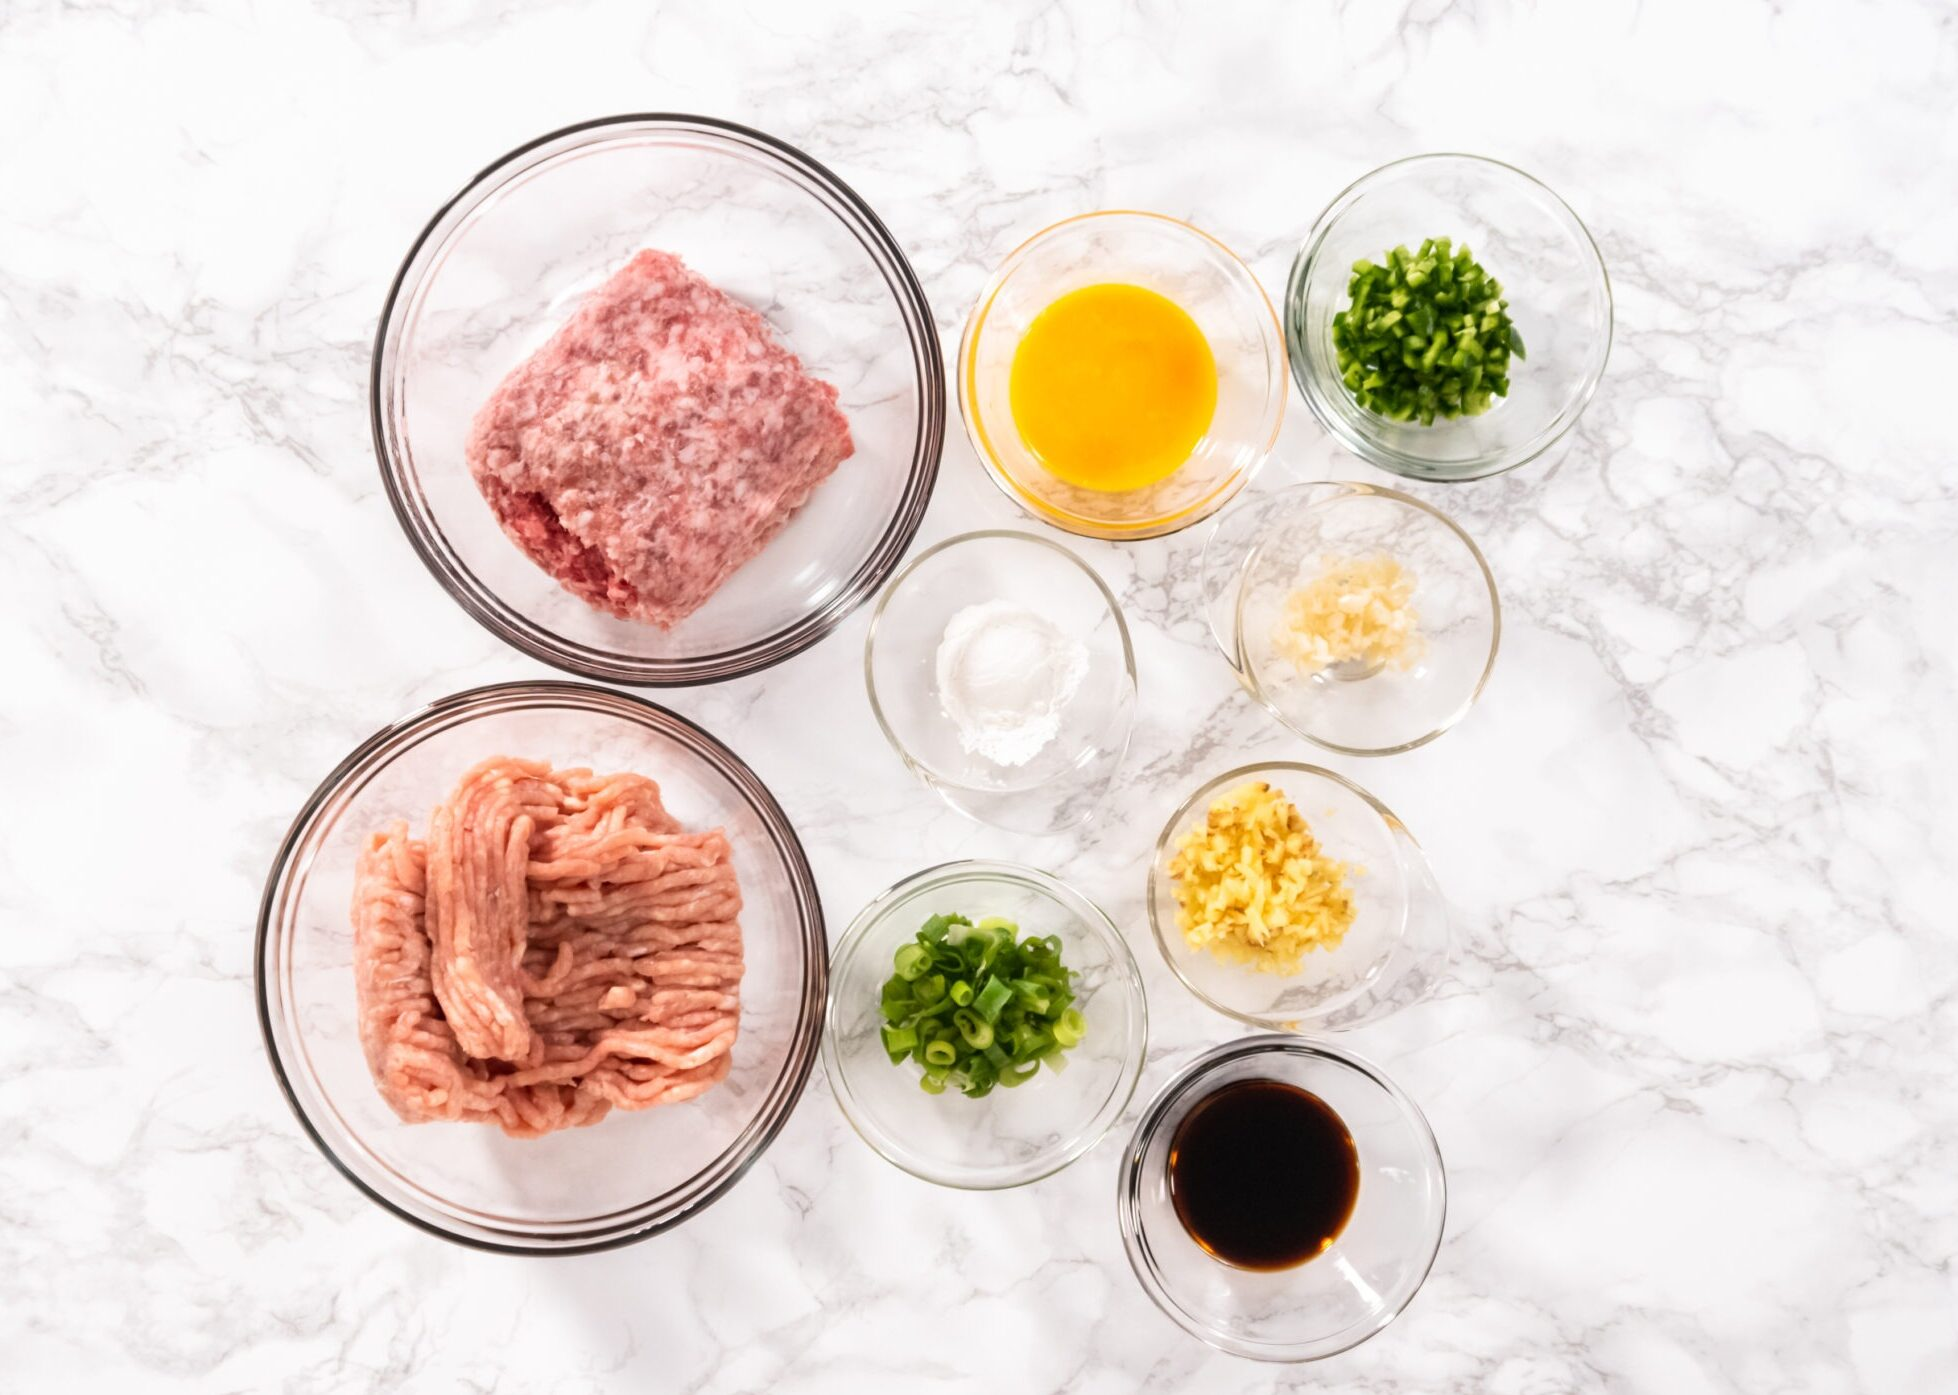 Ingredients needed to make the best healthy asian meatballs. There are ground chicken, ground pork, egg, scallions, ginger, garlic, coconut aminos and vinegar.